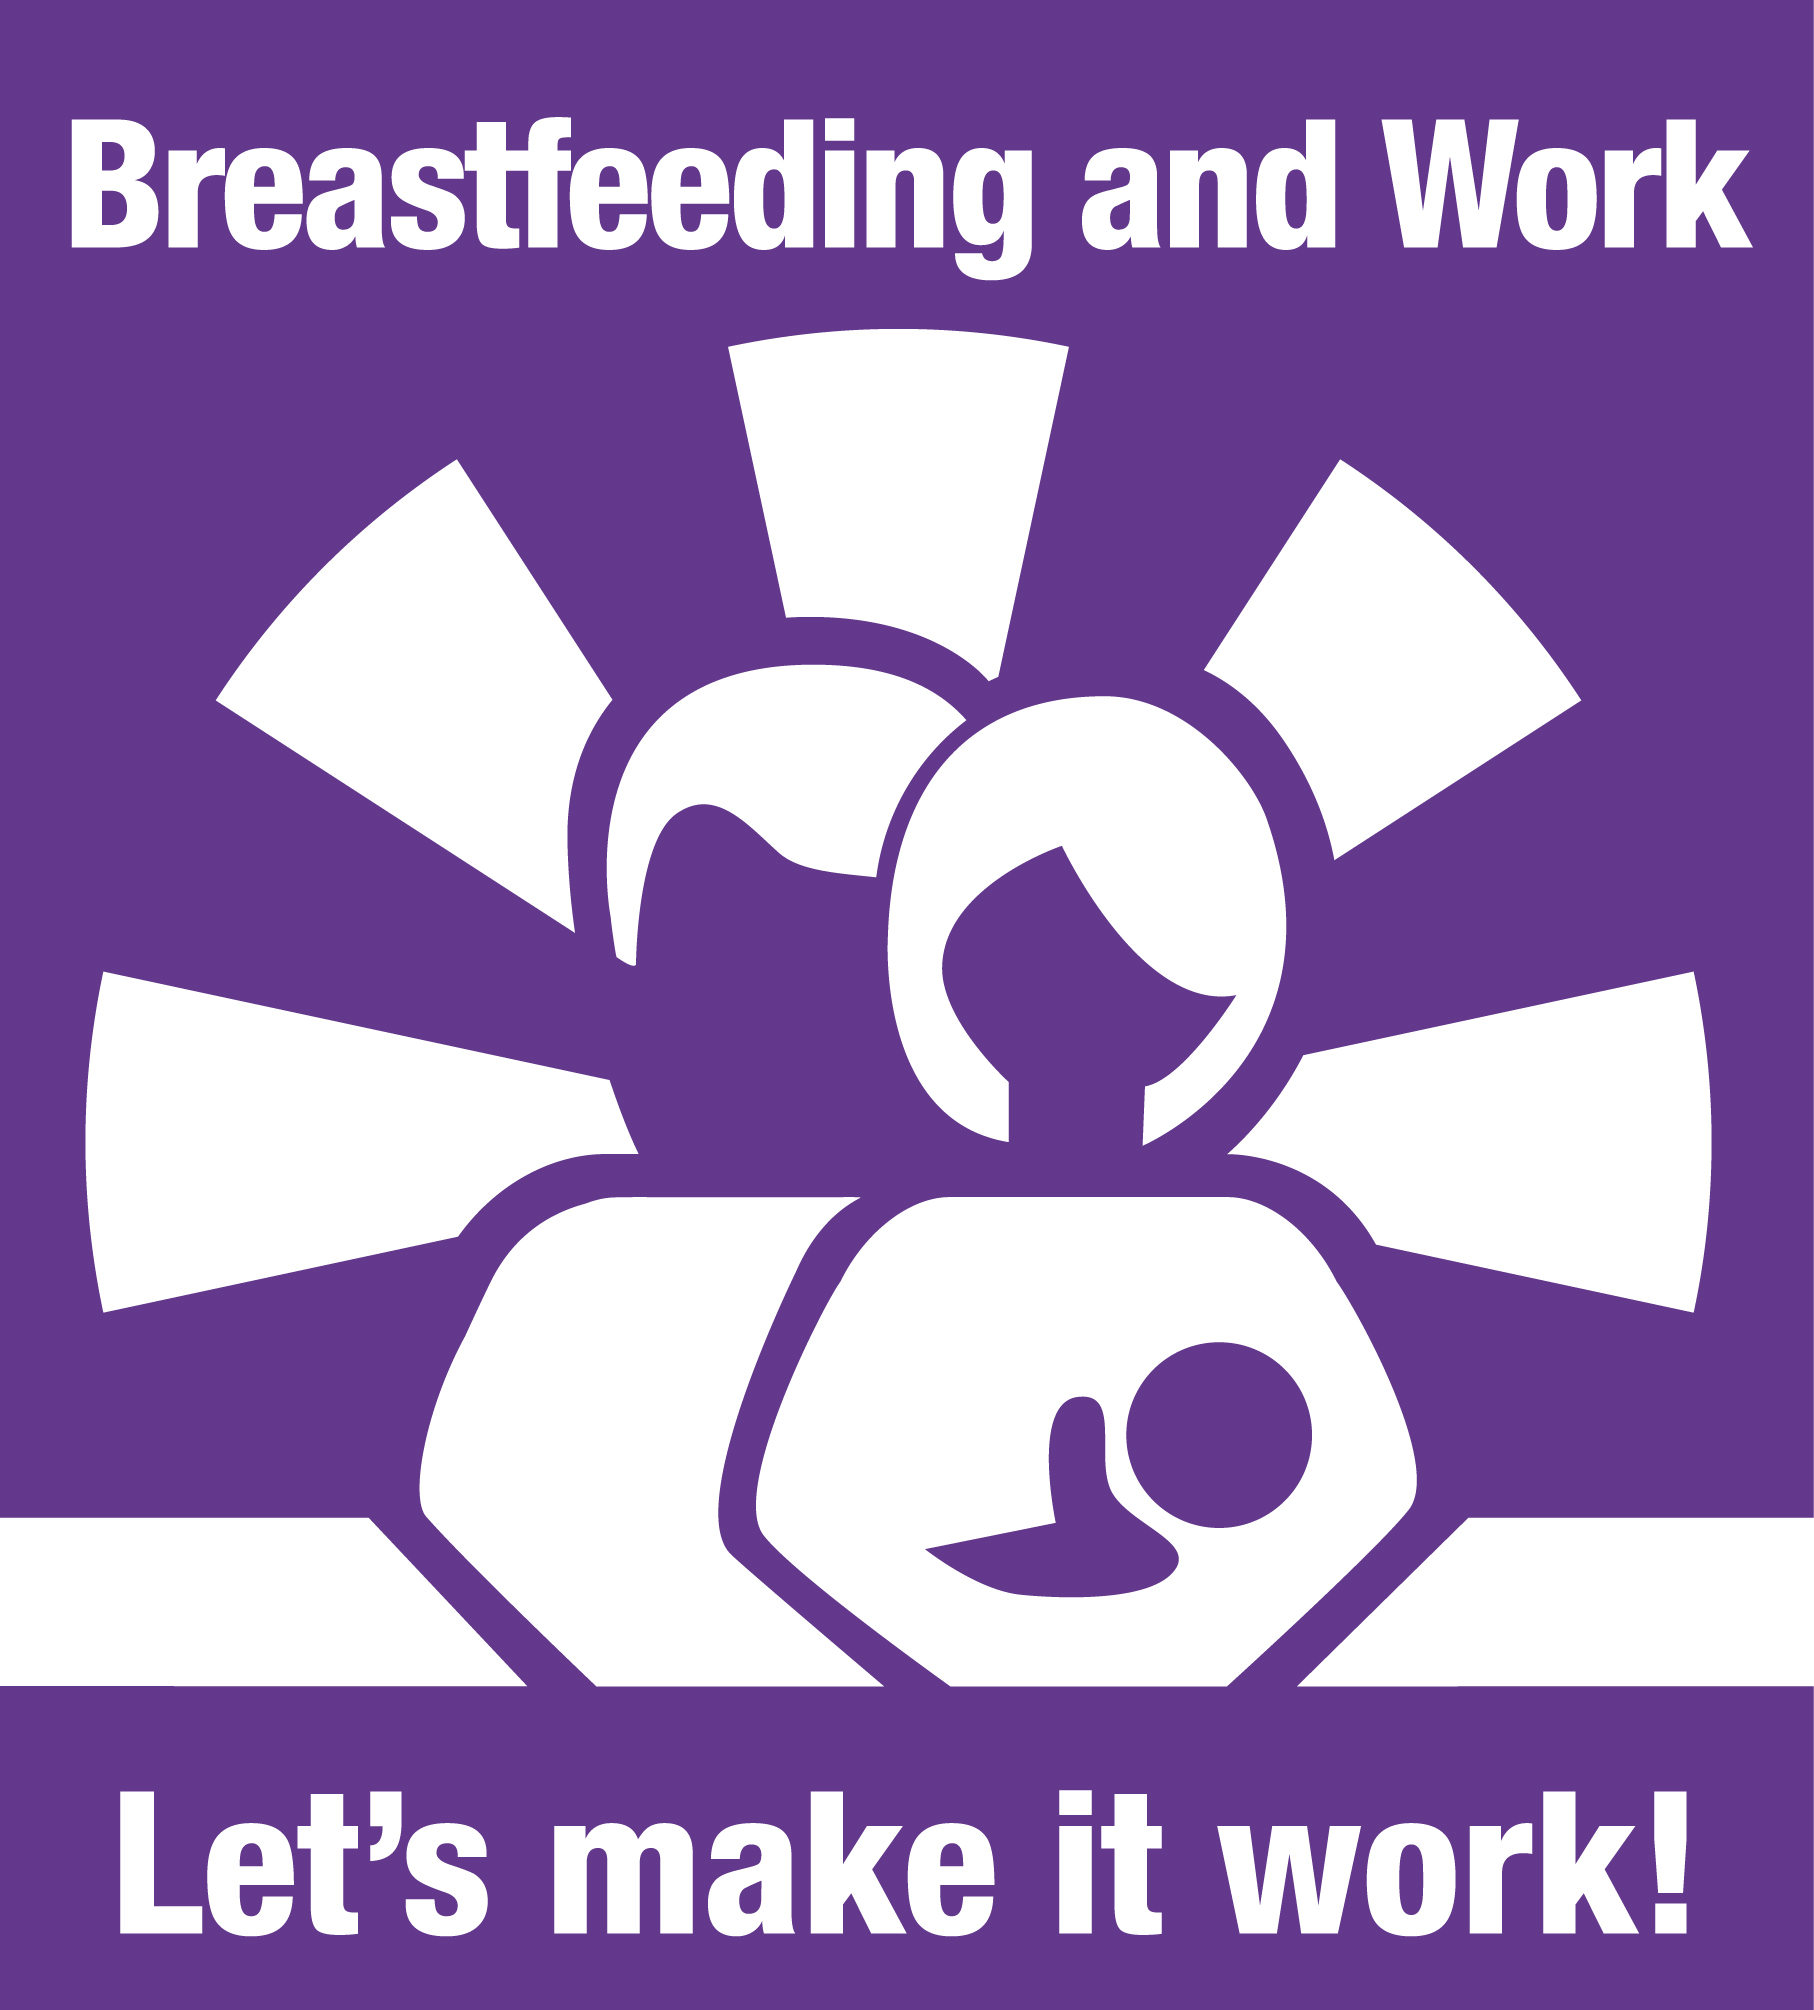 World Breastfeeding Week 2015 logo